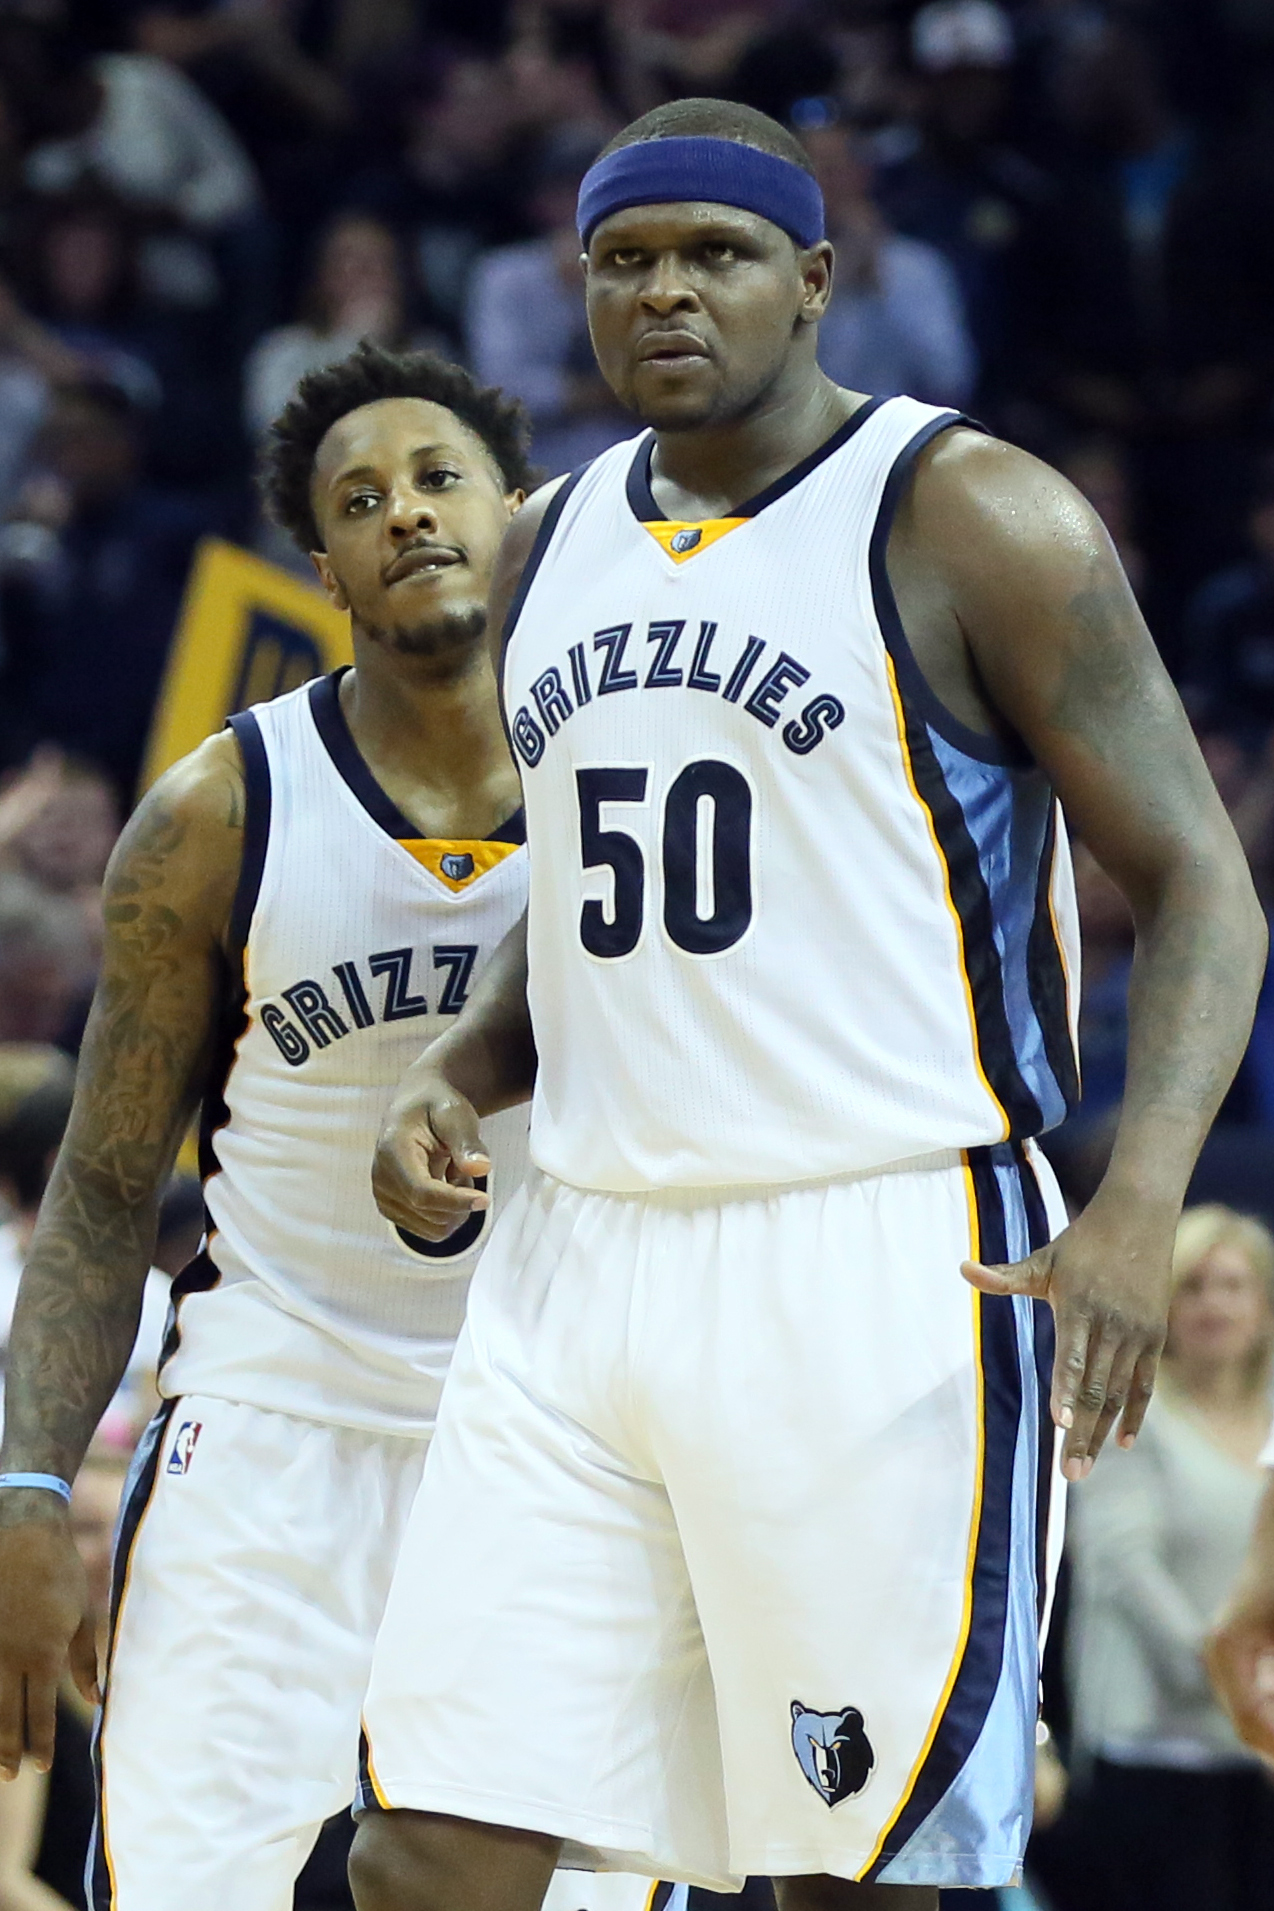 Mario Chalmers will no longer have the back of Zach Randolph this season. This can bring out a lot of different emotions...